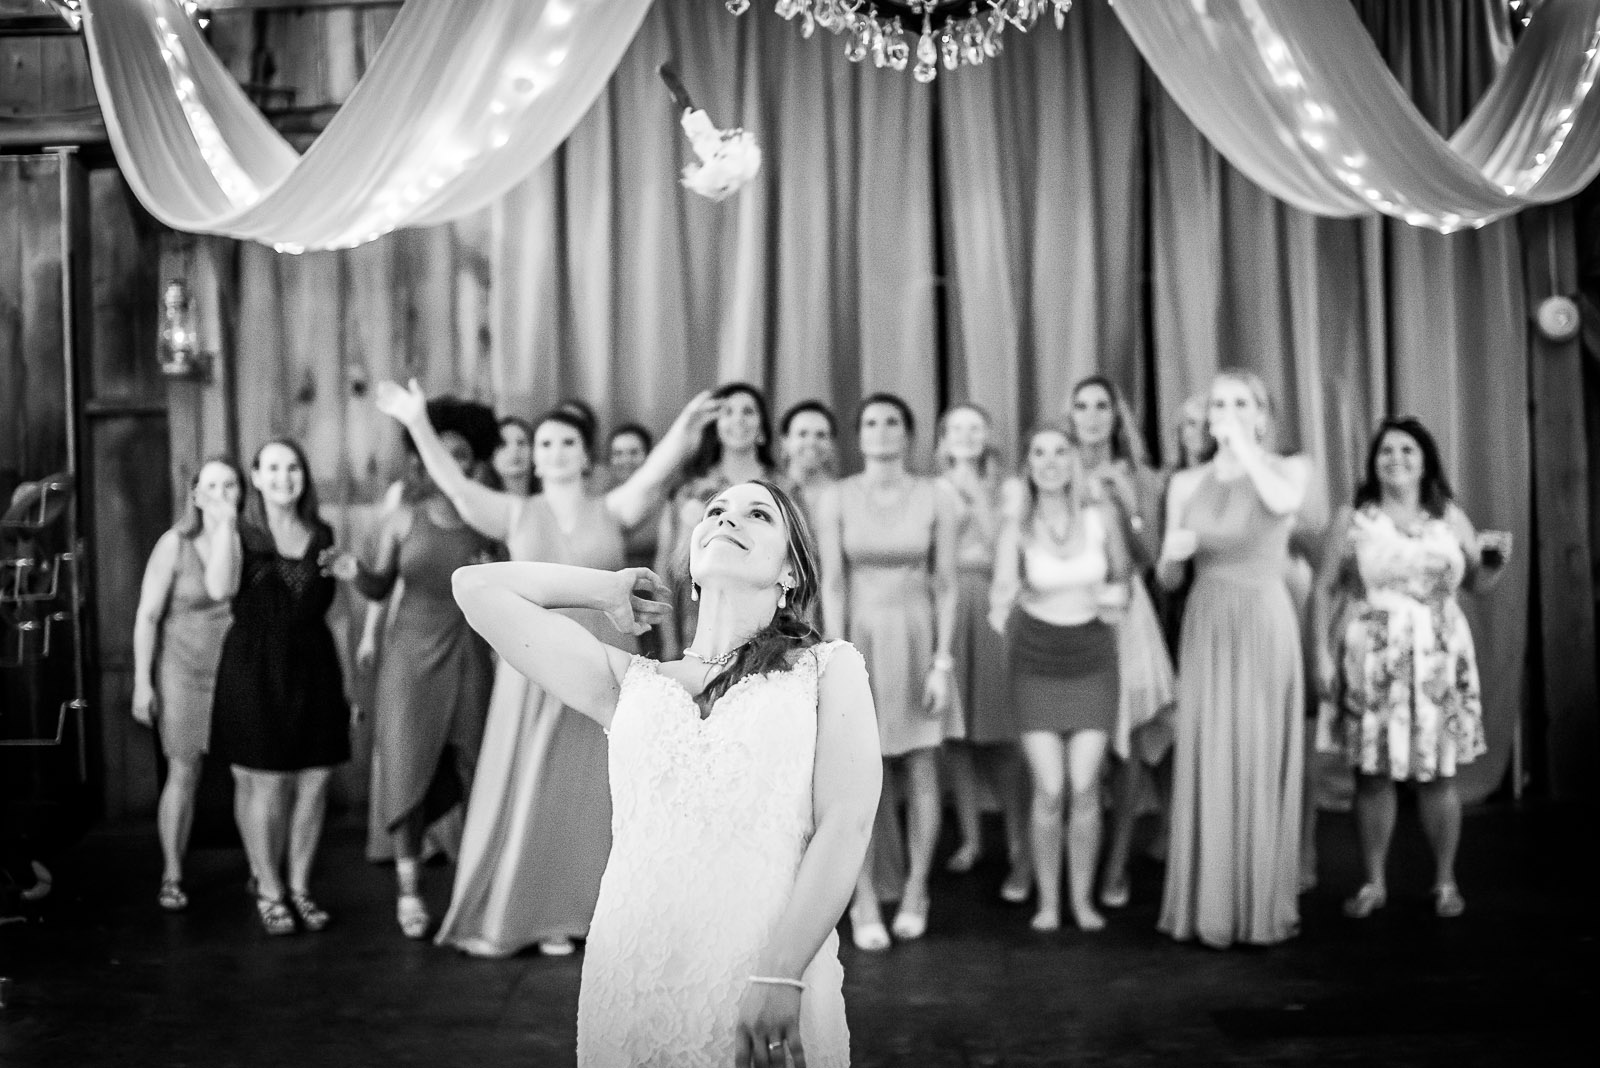 Eric_and_Christy_Photography_Blog_2016_Best_Wedding_Moments-47